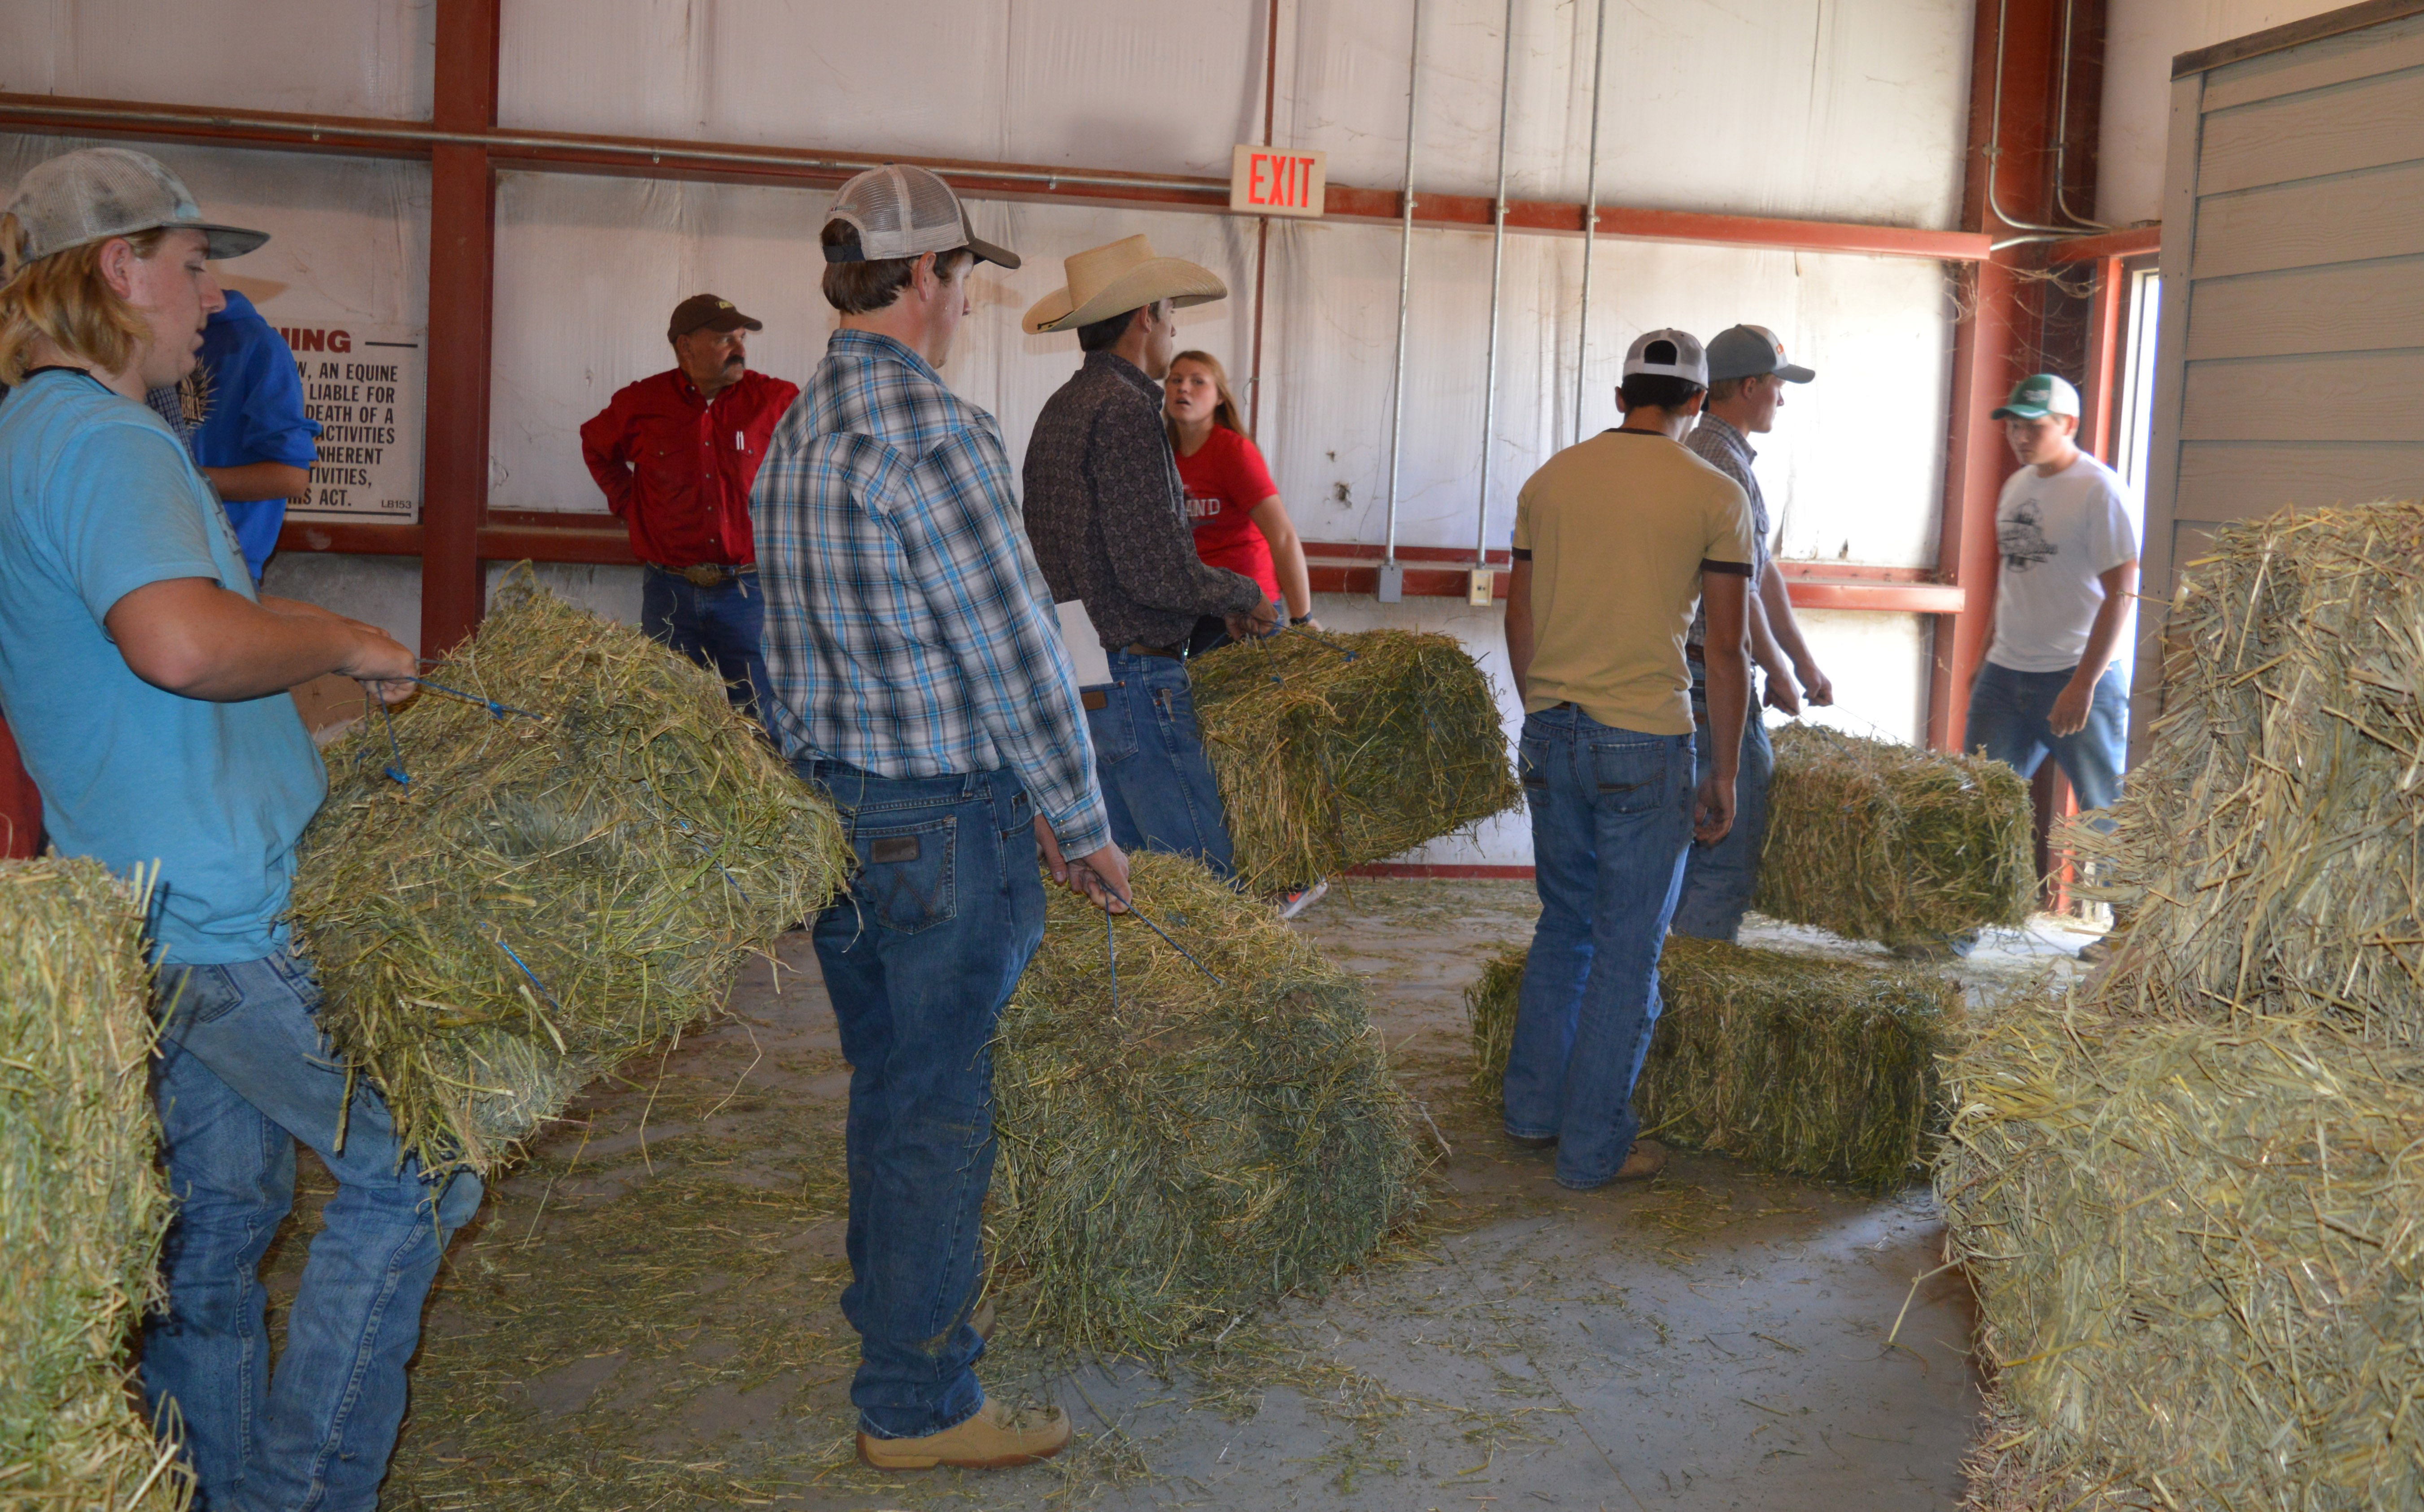 In September, community residents and NCTA friends loaded Hurricane relief for Texas which included bales of hay collected at the NCTA Livestock Teaching Center. (Catherine Hauptman/NCTA photo)